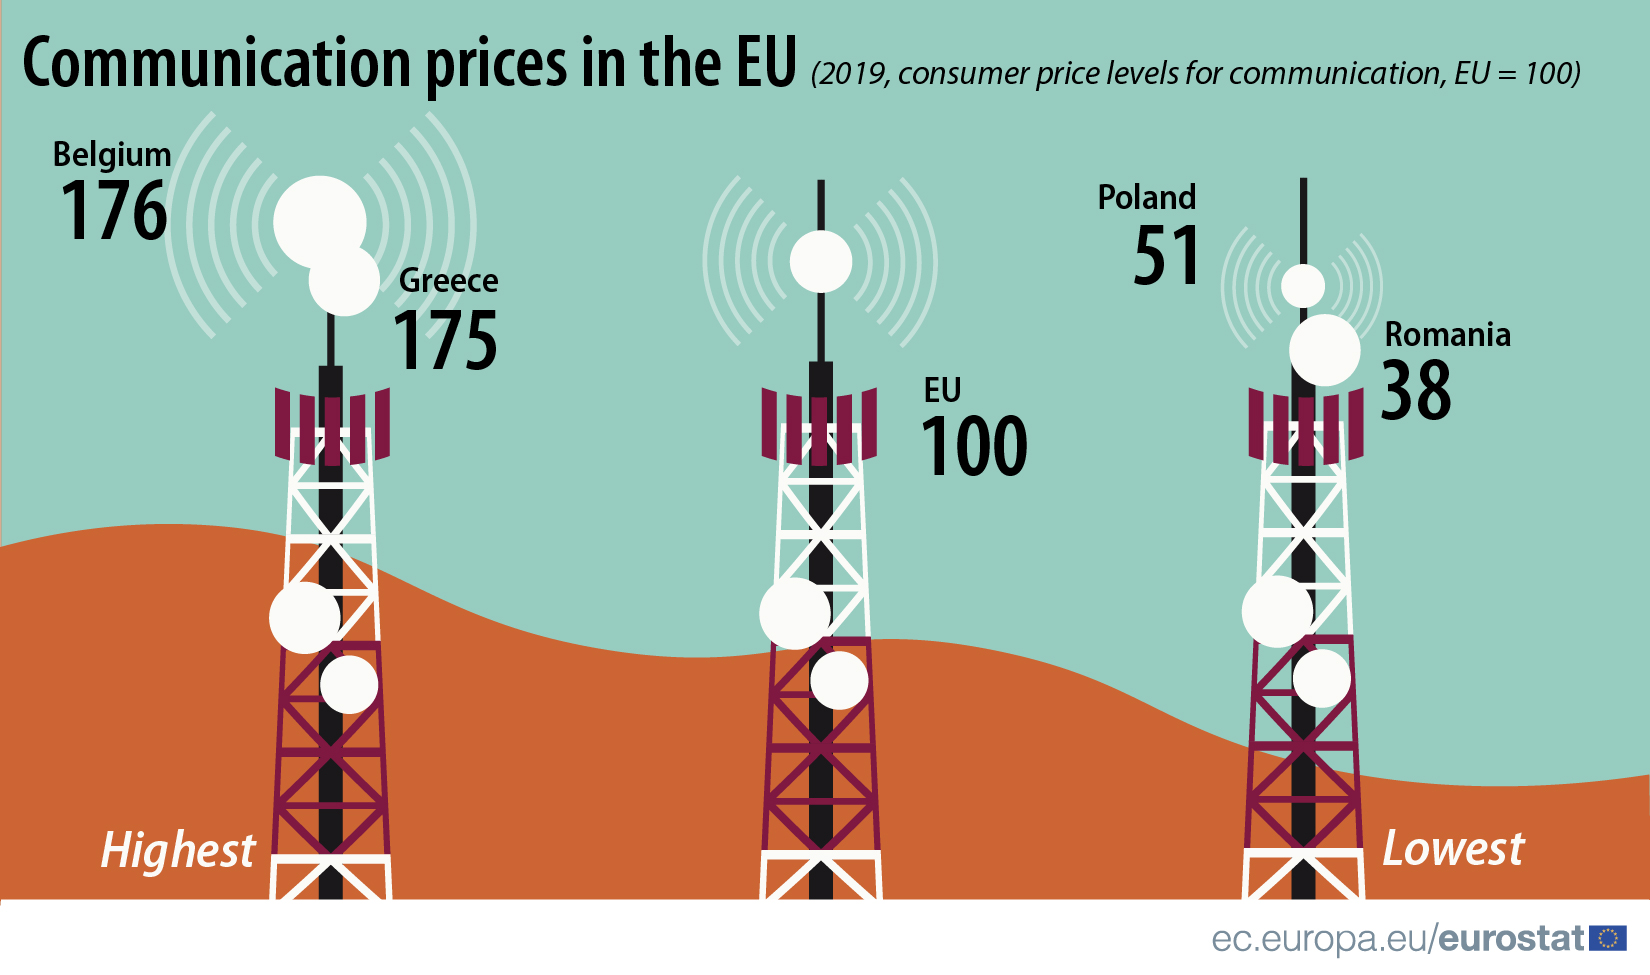 Communication prices in the EU, 2019